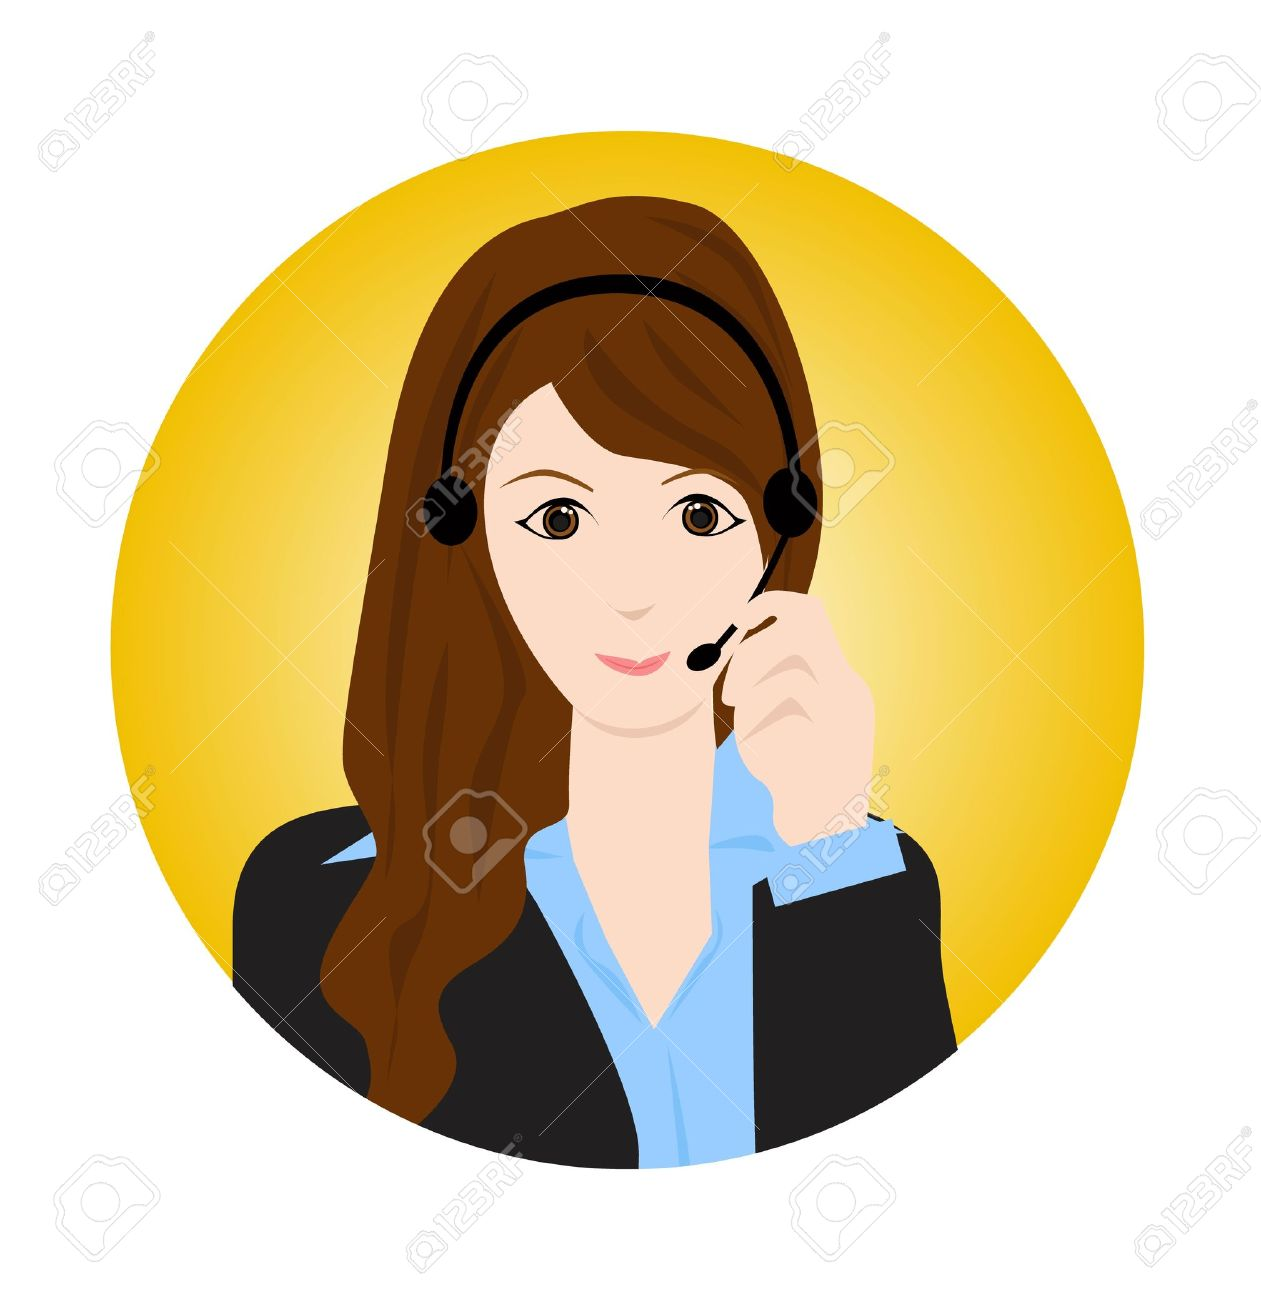 Customer service agent clipart clip transparent stock Customer service agent clipart - ClipartFest clip transparent stock